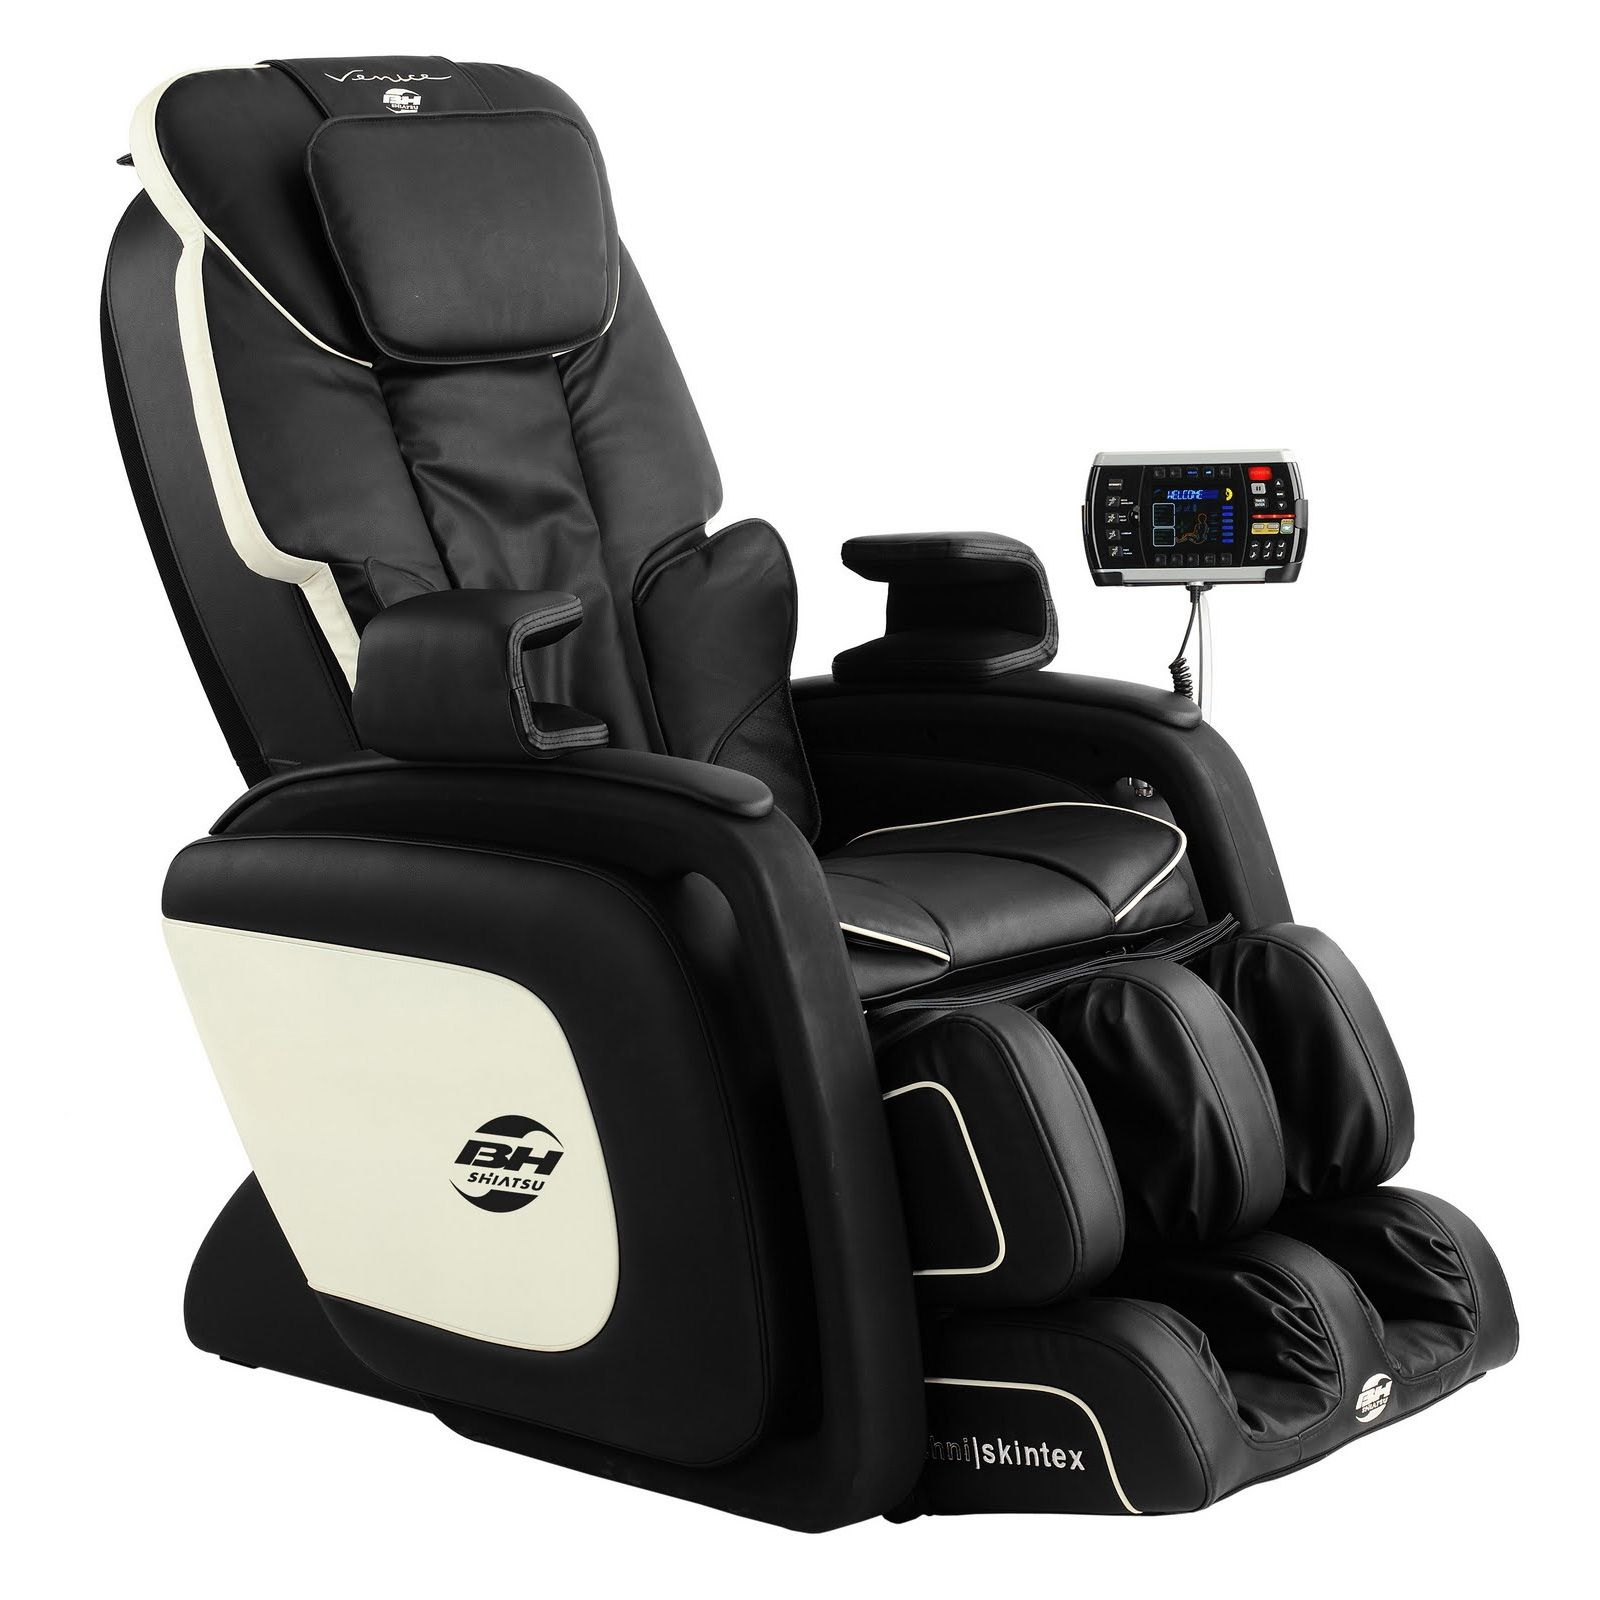 Message Chair Bh Shiatsu M650 Venice Massage Chair Sweatband